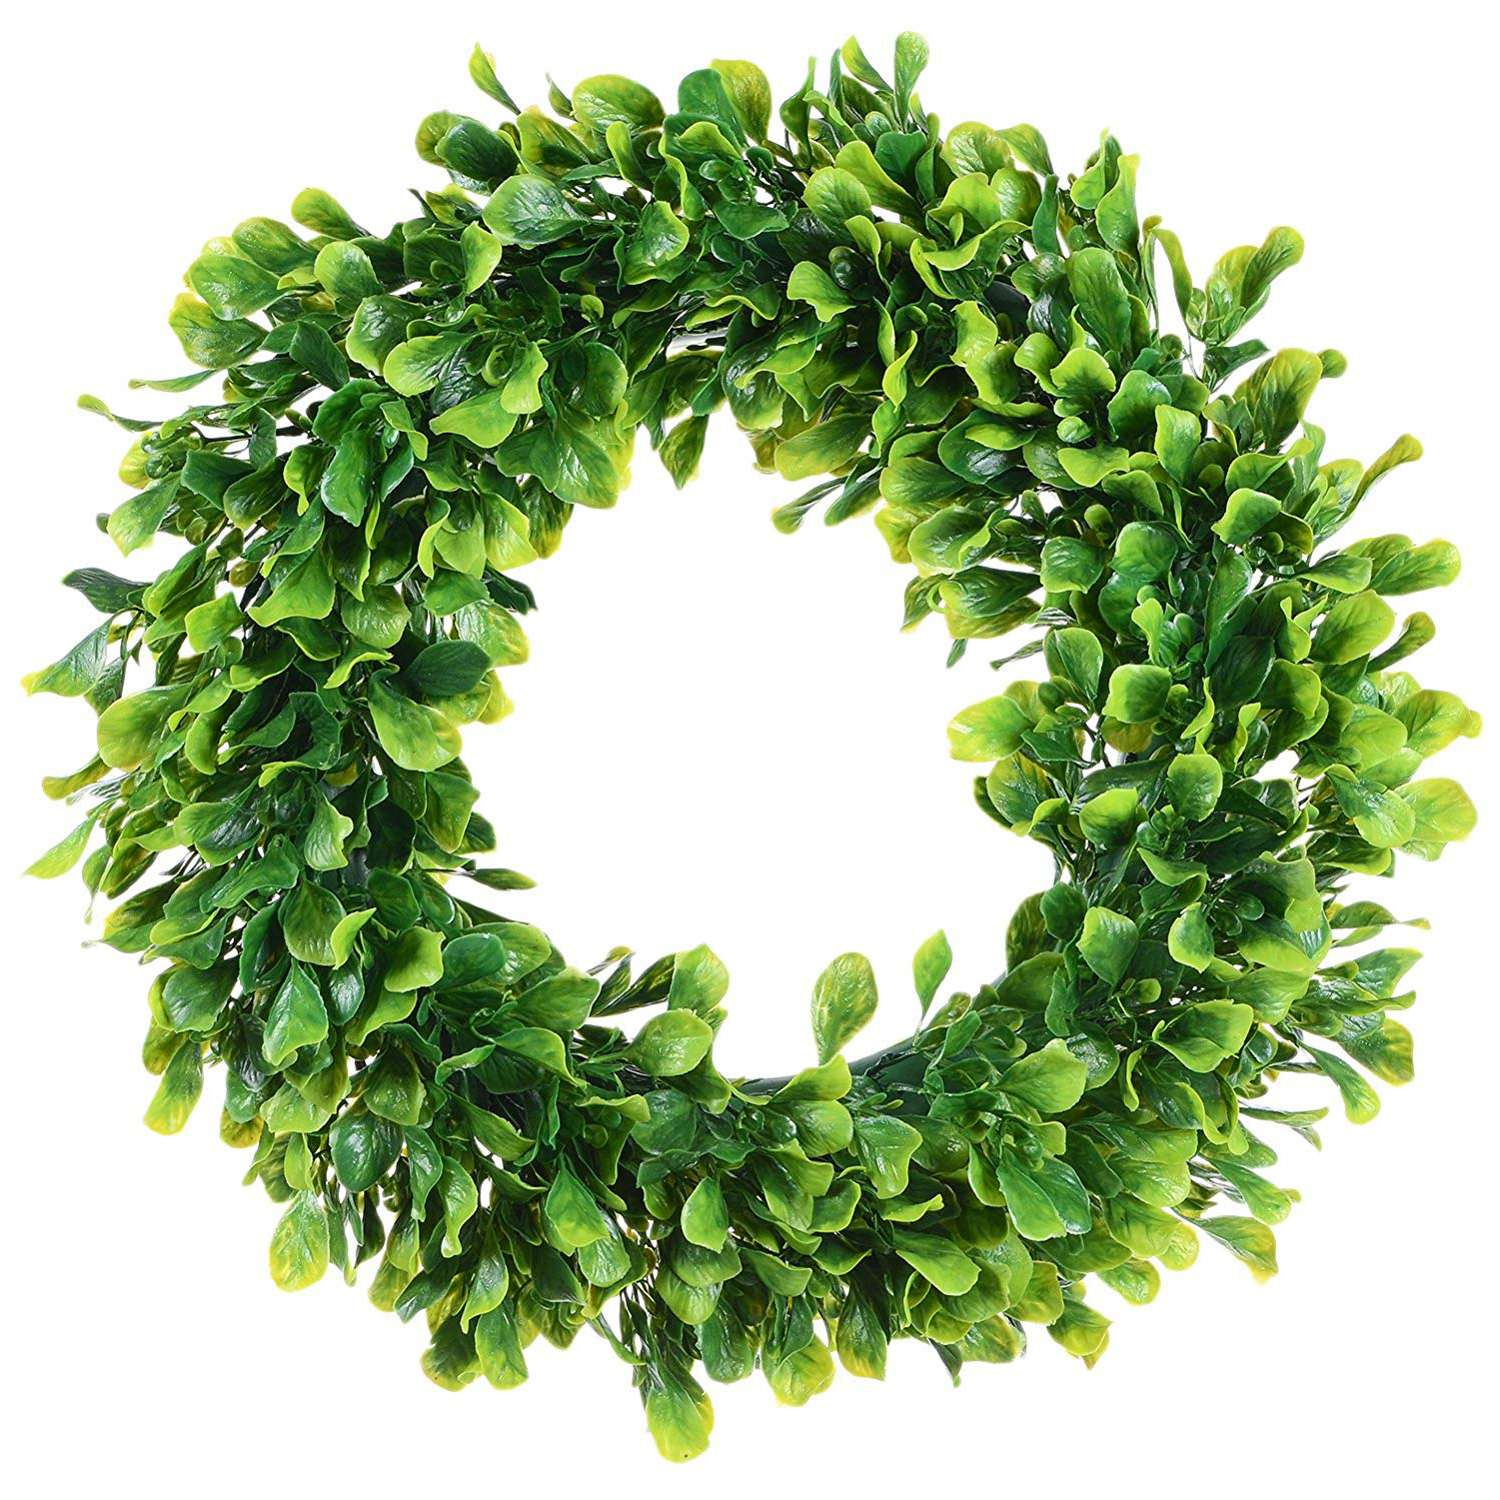 Artificial Green Leaves Wreath 15 Inch Boxwood Wreath